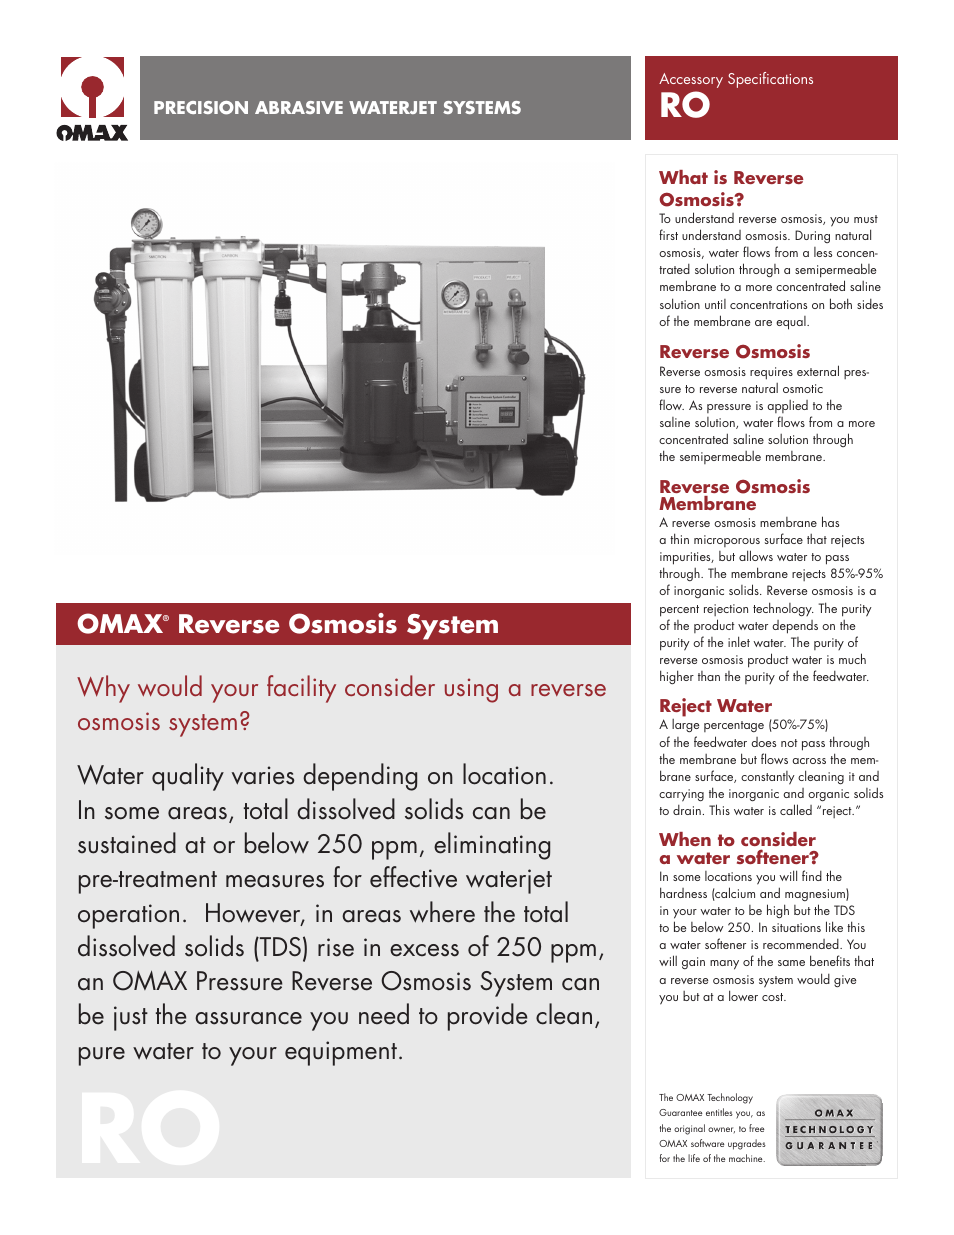 OMAX Reverse Osmosis System User Manual | 2 pages